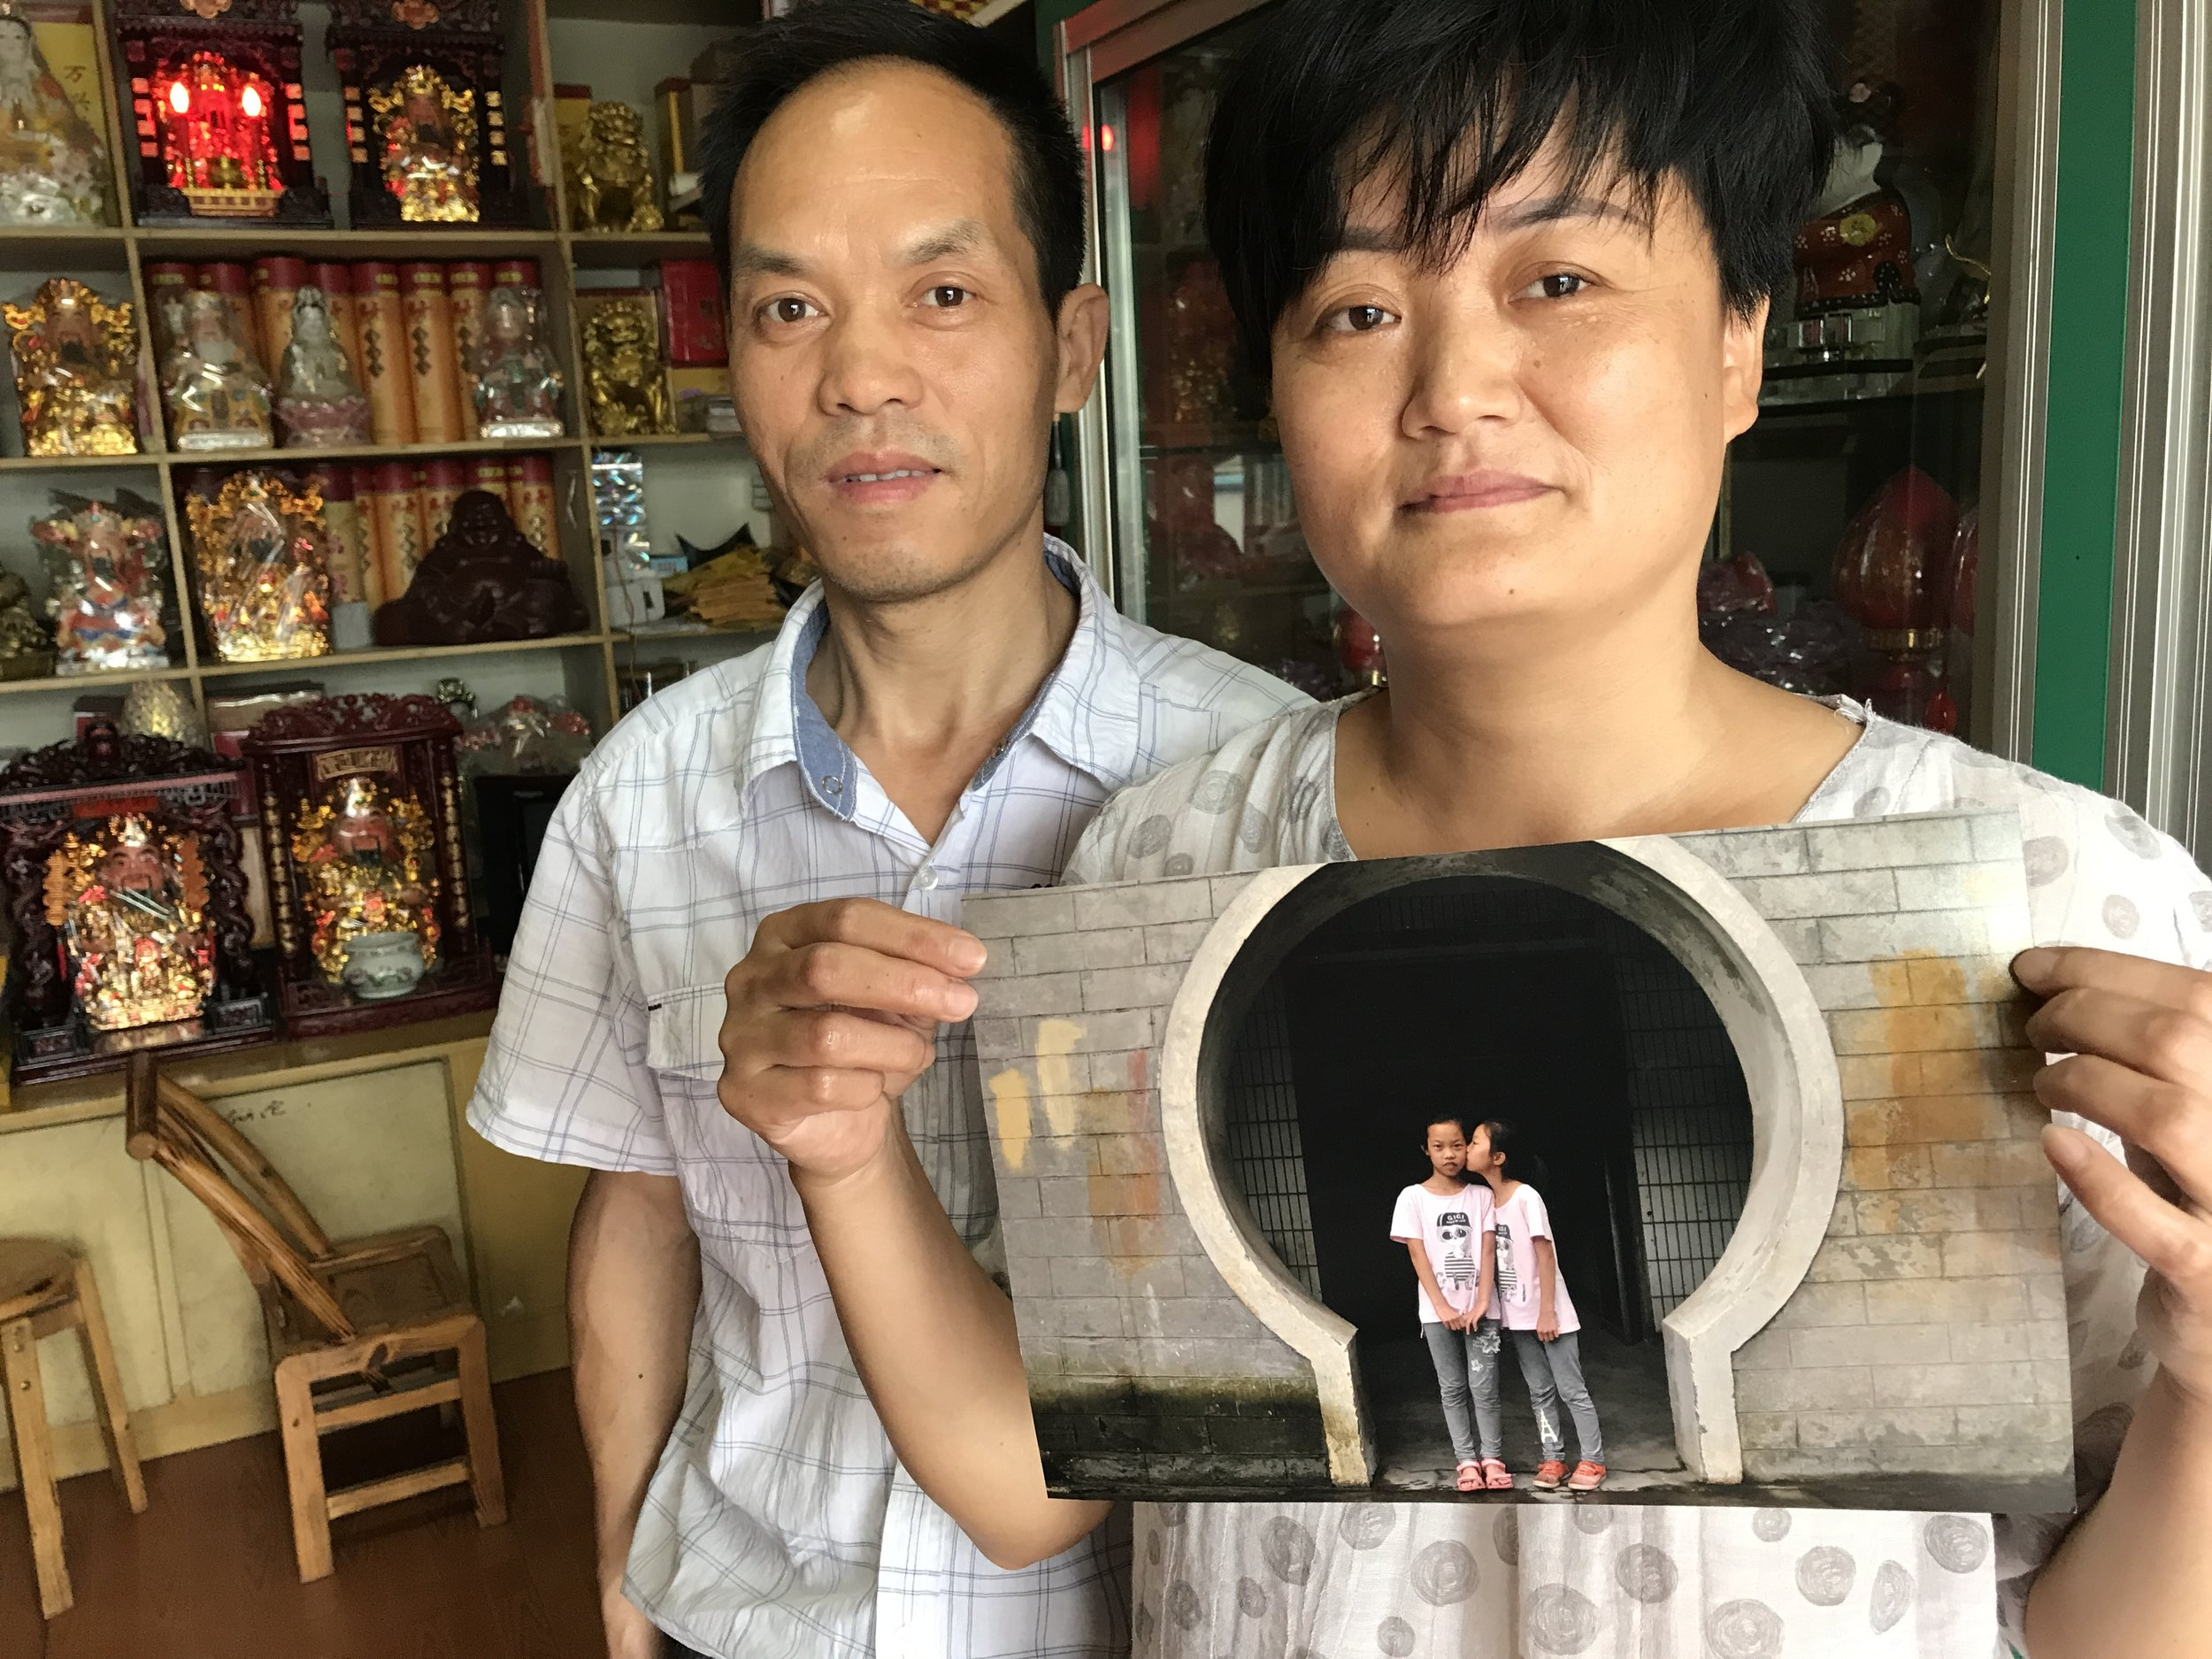 Xin Xian Shou and Zhu Yuan e with the 2016 portrait of their daughters, during a 2017 visit.